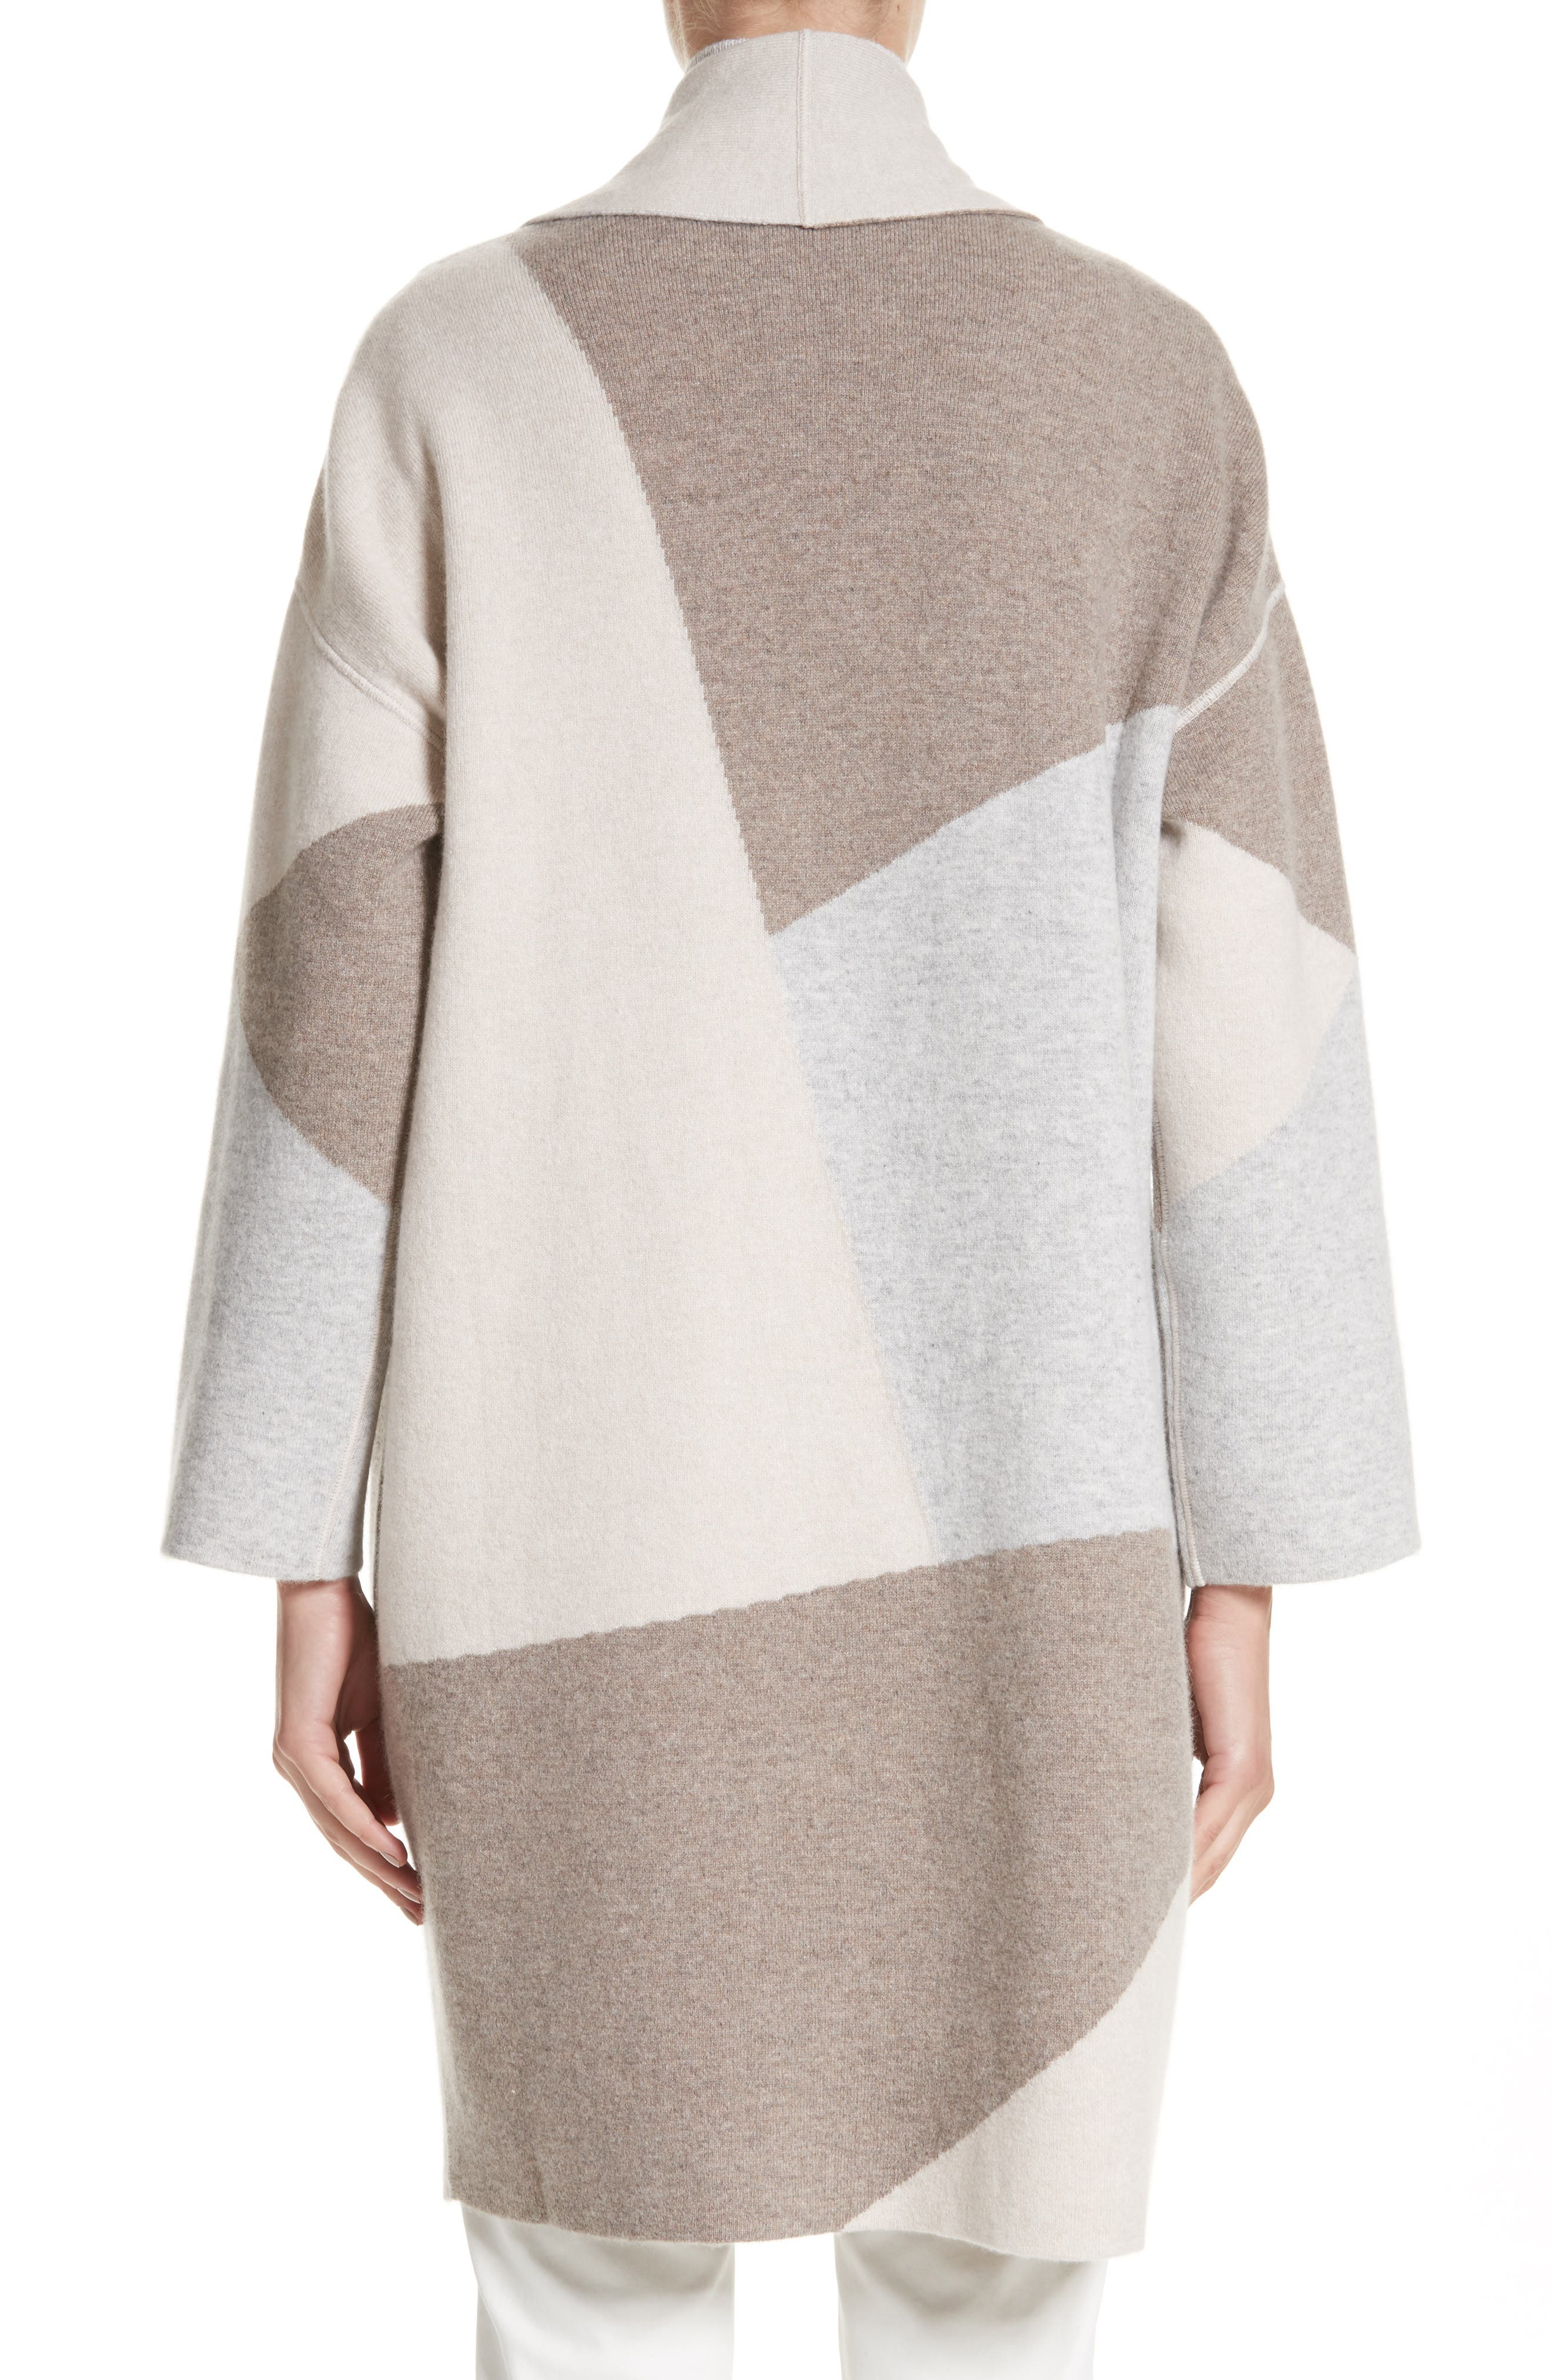 Alternate Image 2  - Lafayette 148 New York Stretch Cashmere Reversible Felted Colorblock Cardigan